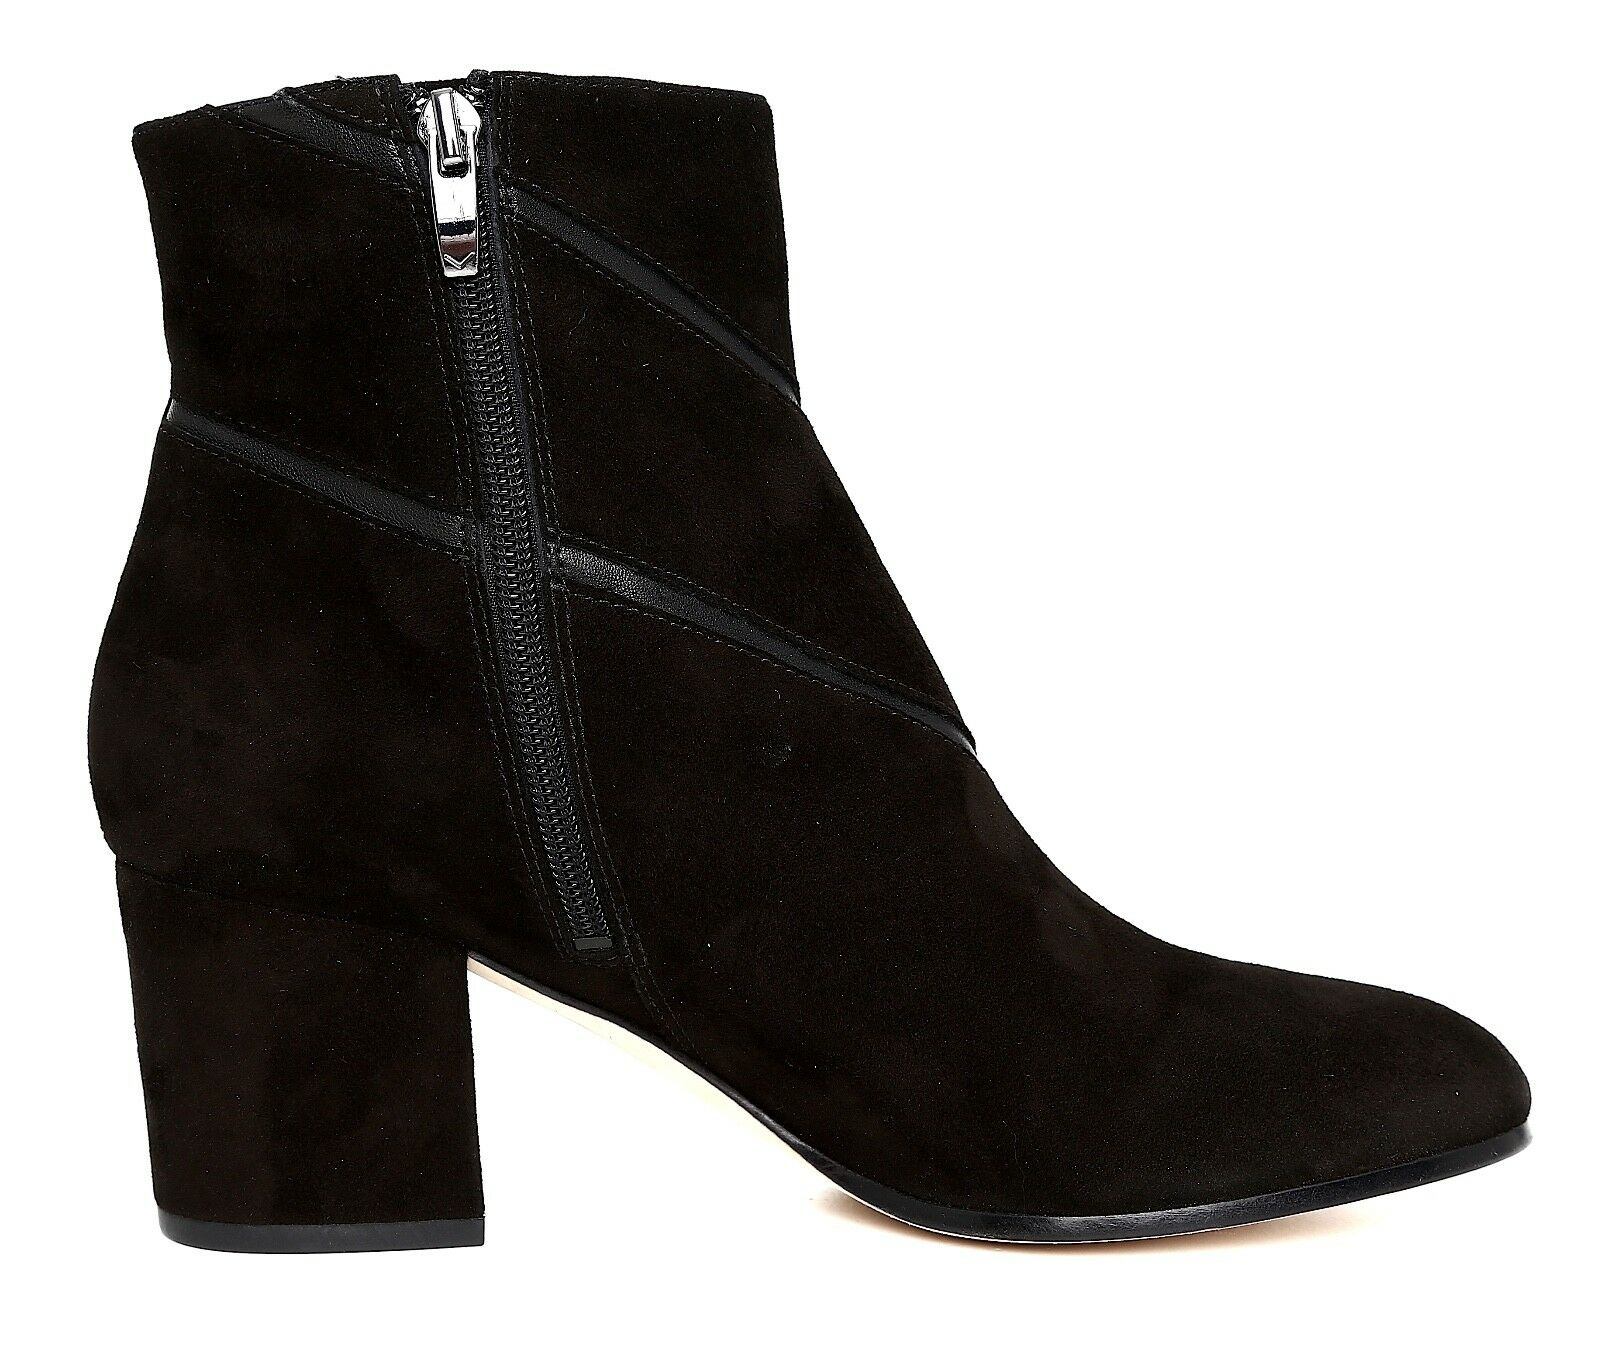 Via Spiga Fito Suede Ankle Ankle Ankle Boot Black Women Sz 8.5 M 5740  4ecb99